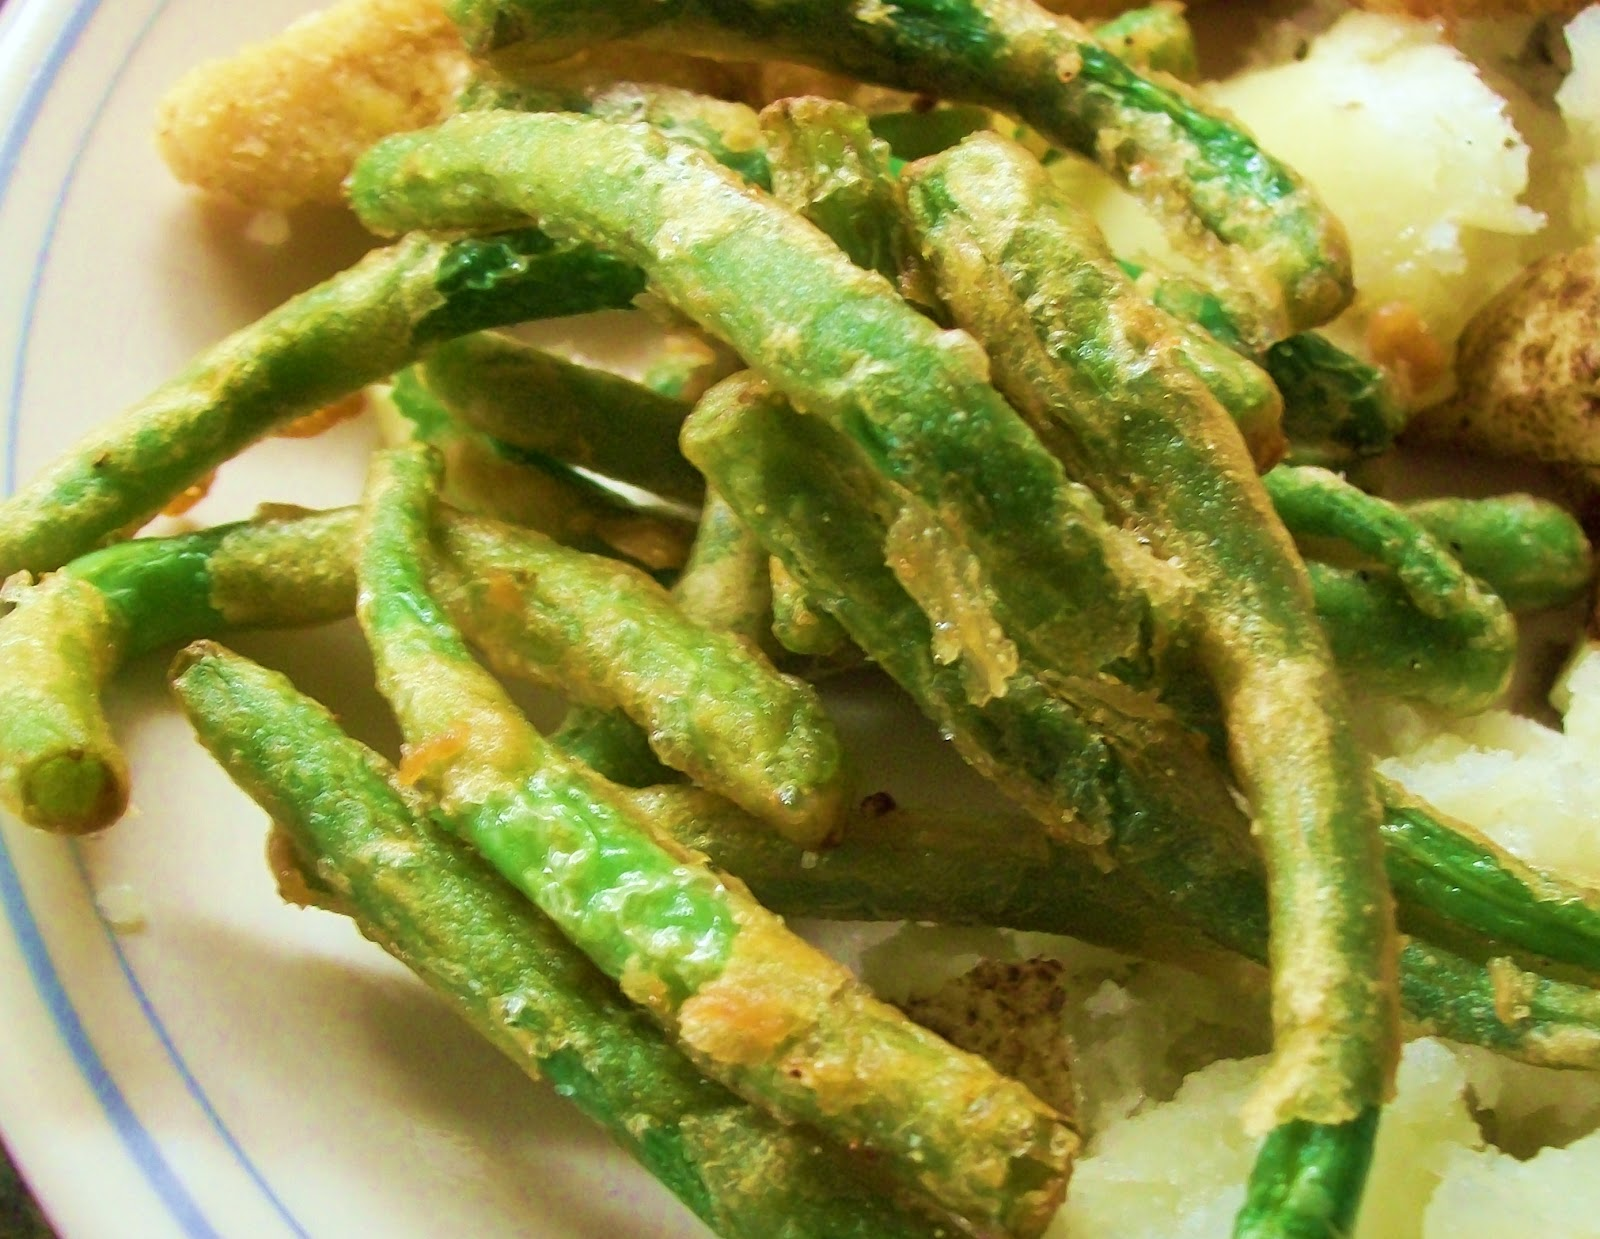 fried green beans 1 lb fresh green beans with ends